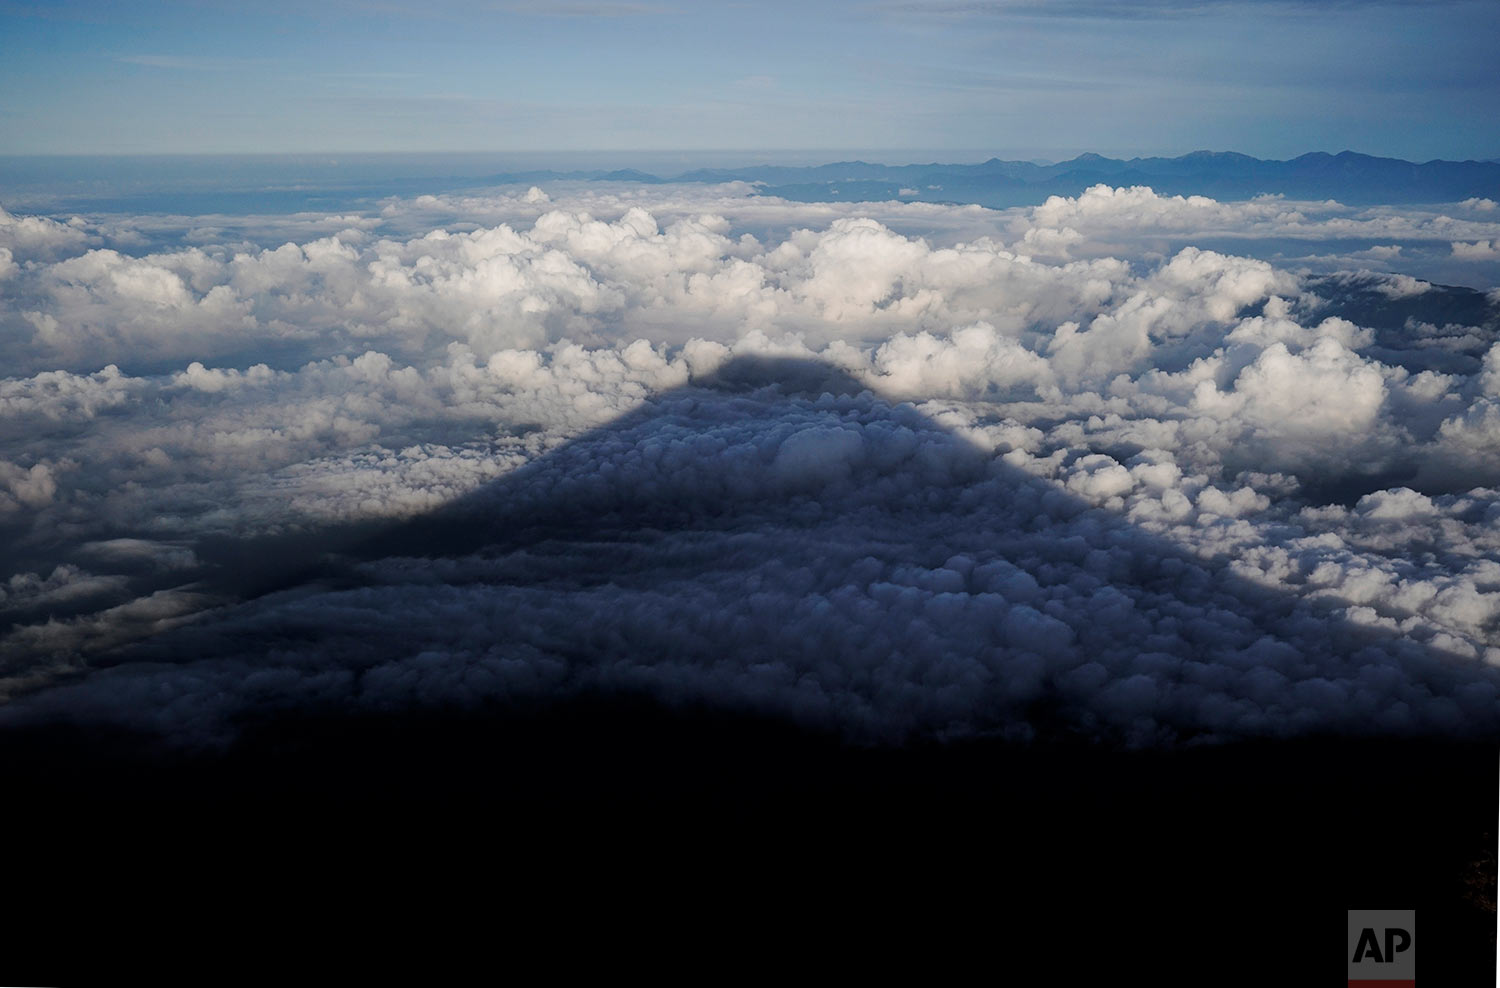 The shadow of Mount Fuji is casted on clouds hanging below the summit, Aug. 27, 2019, in Japan. (AP Photo/Jae C. Hong)